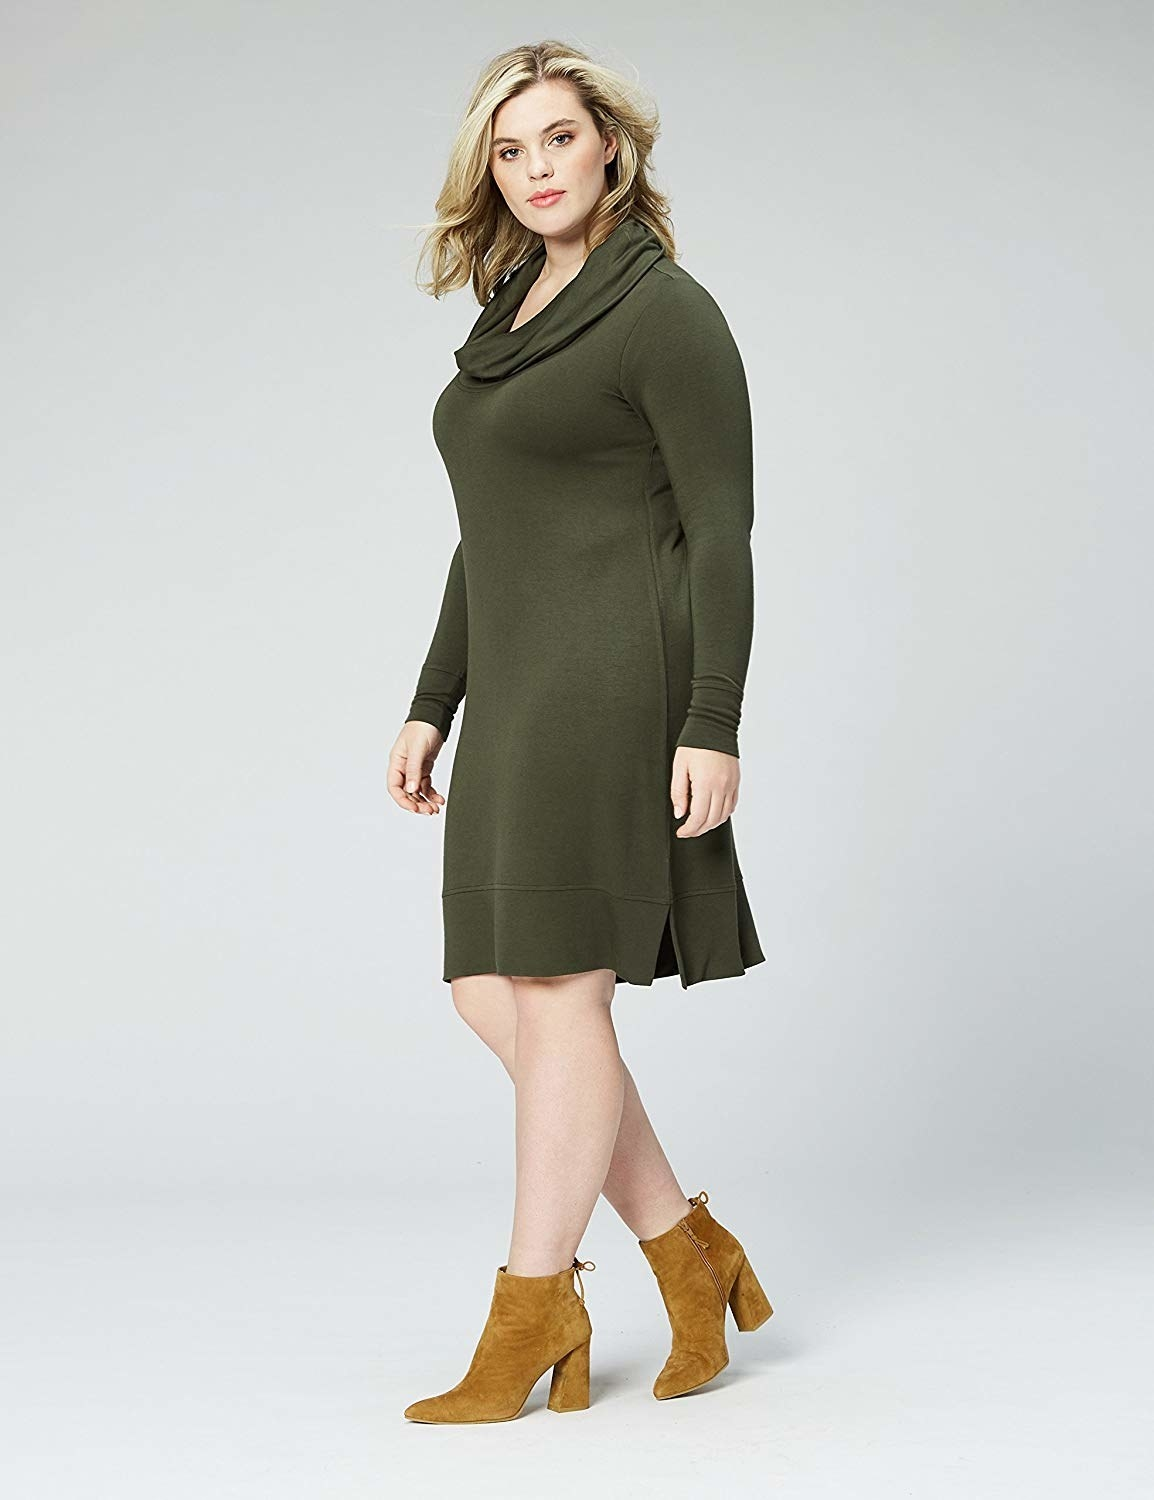 Plus size dress in olive green with loose neck, long sleeves, flowing skirt, and figure-hugging fabric